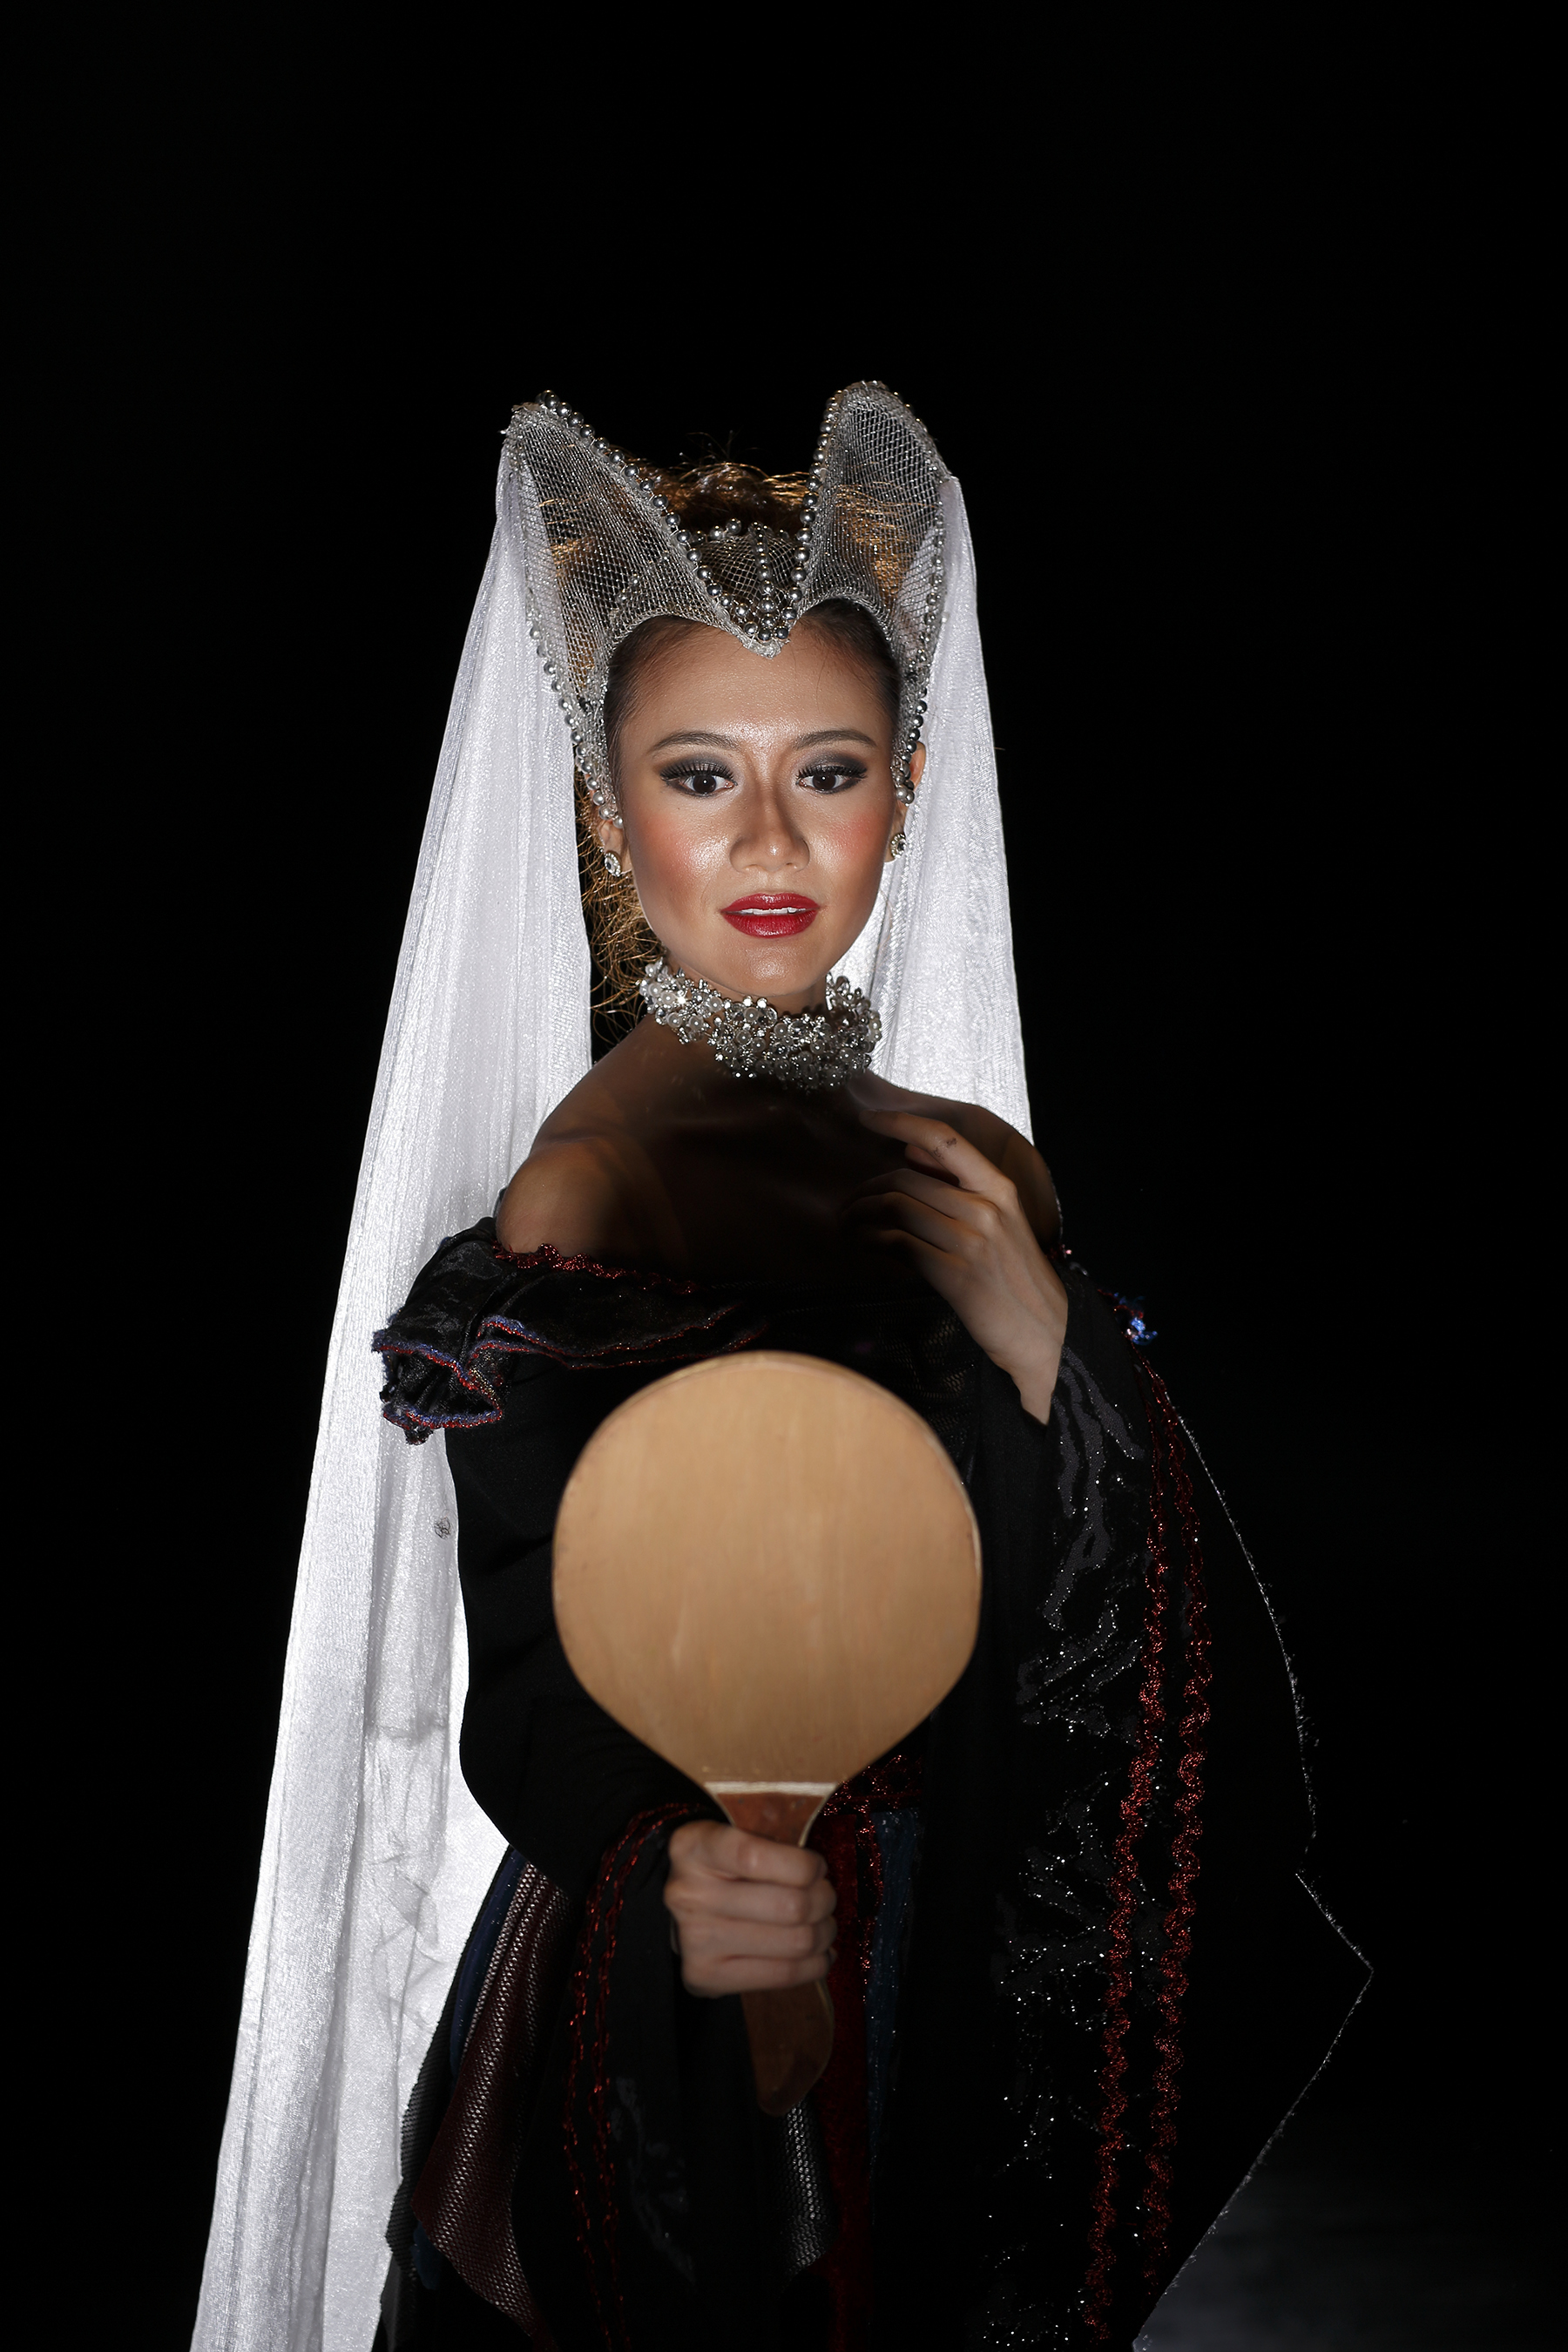 The evil queen in    Snow White   , as portrayed by Abigail Oliveiro, is vanity personified.